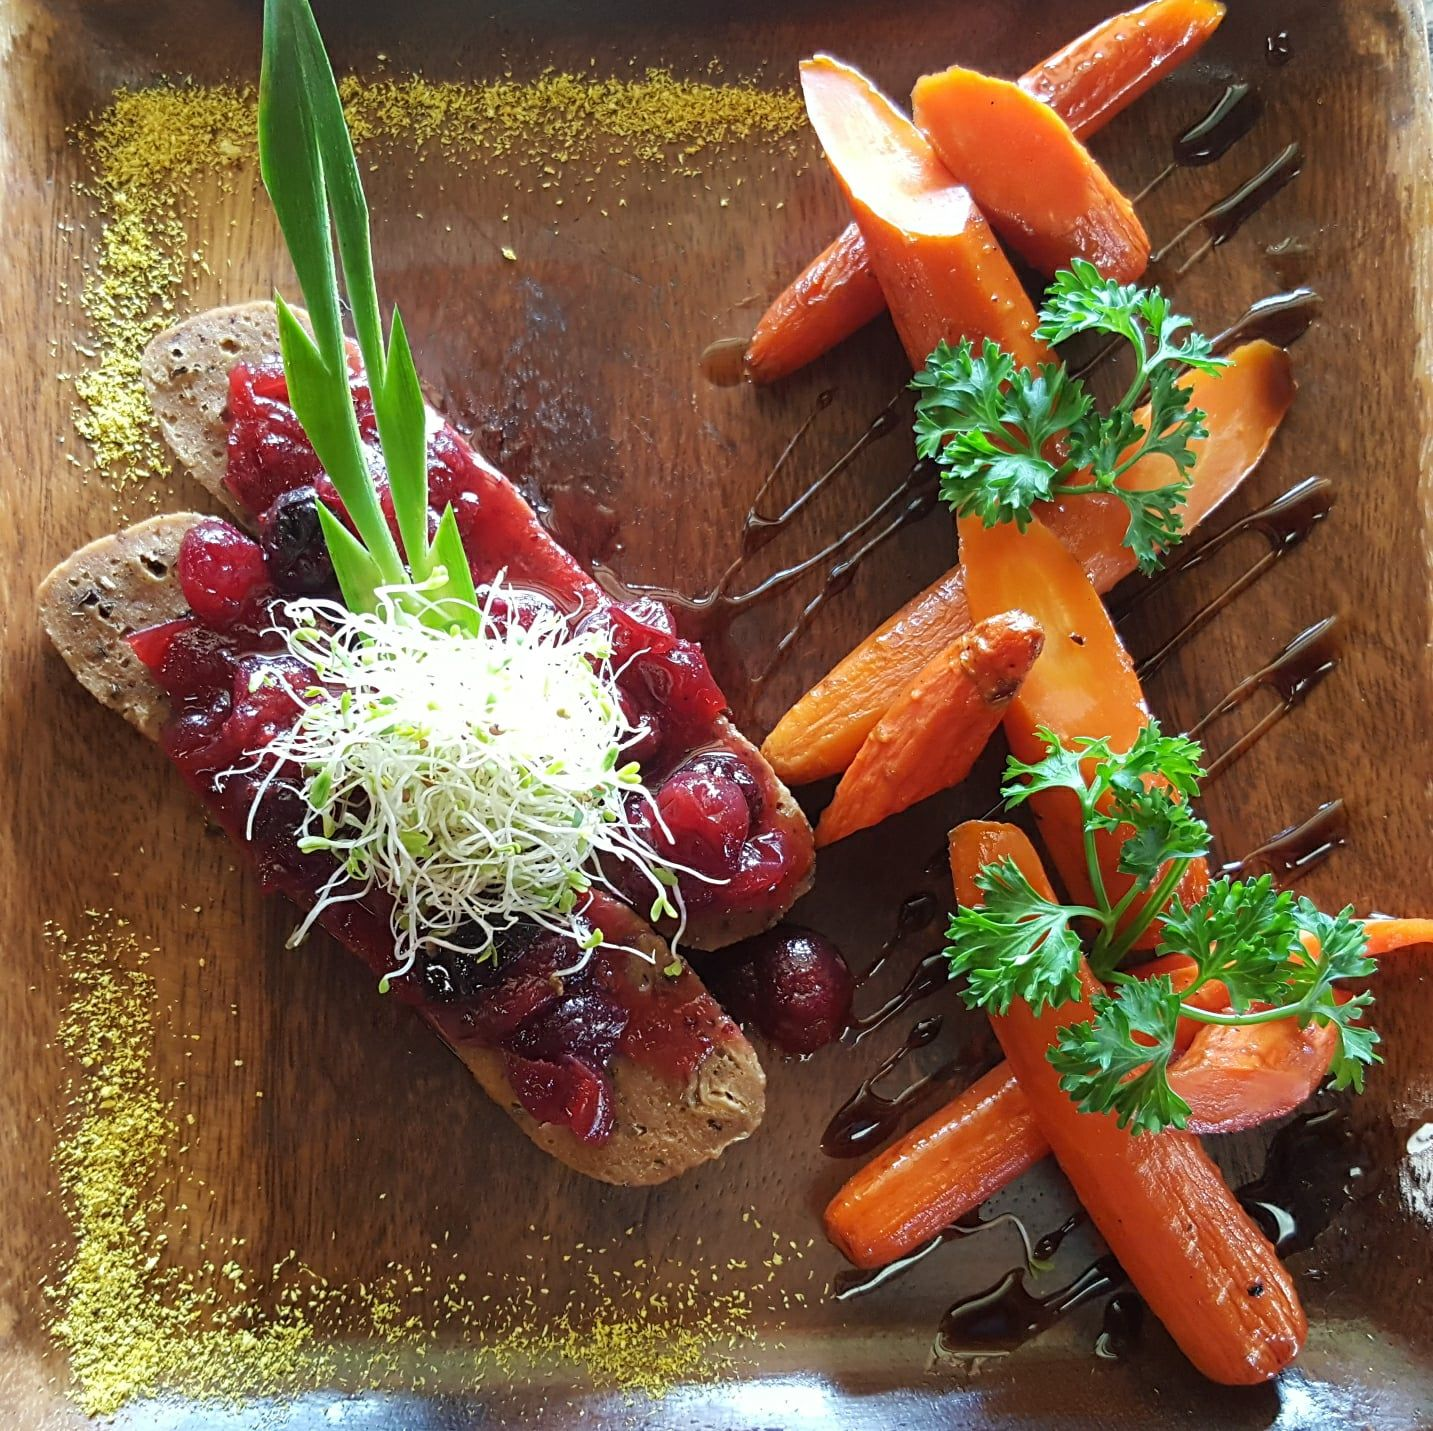 Vivo meat with carrots.jpg